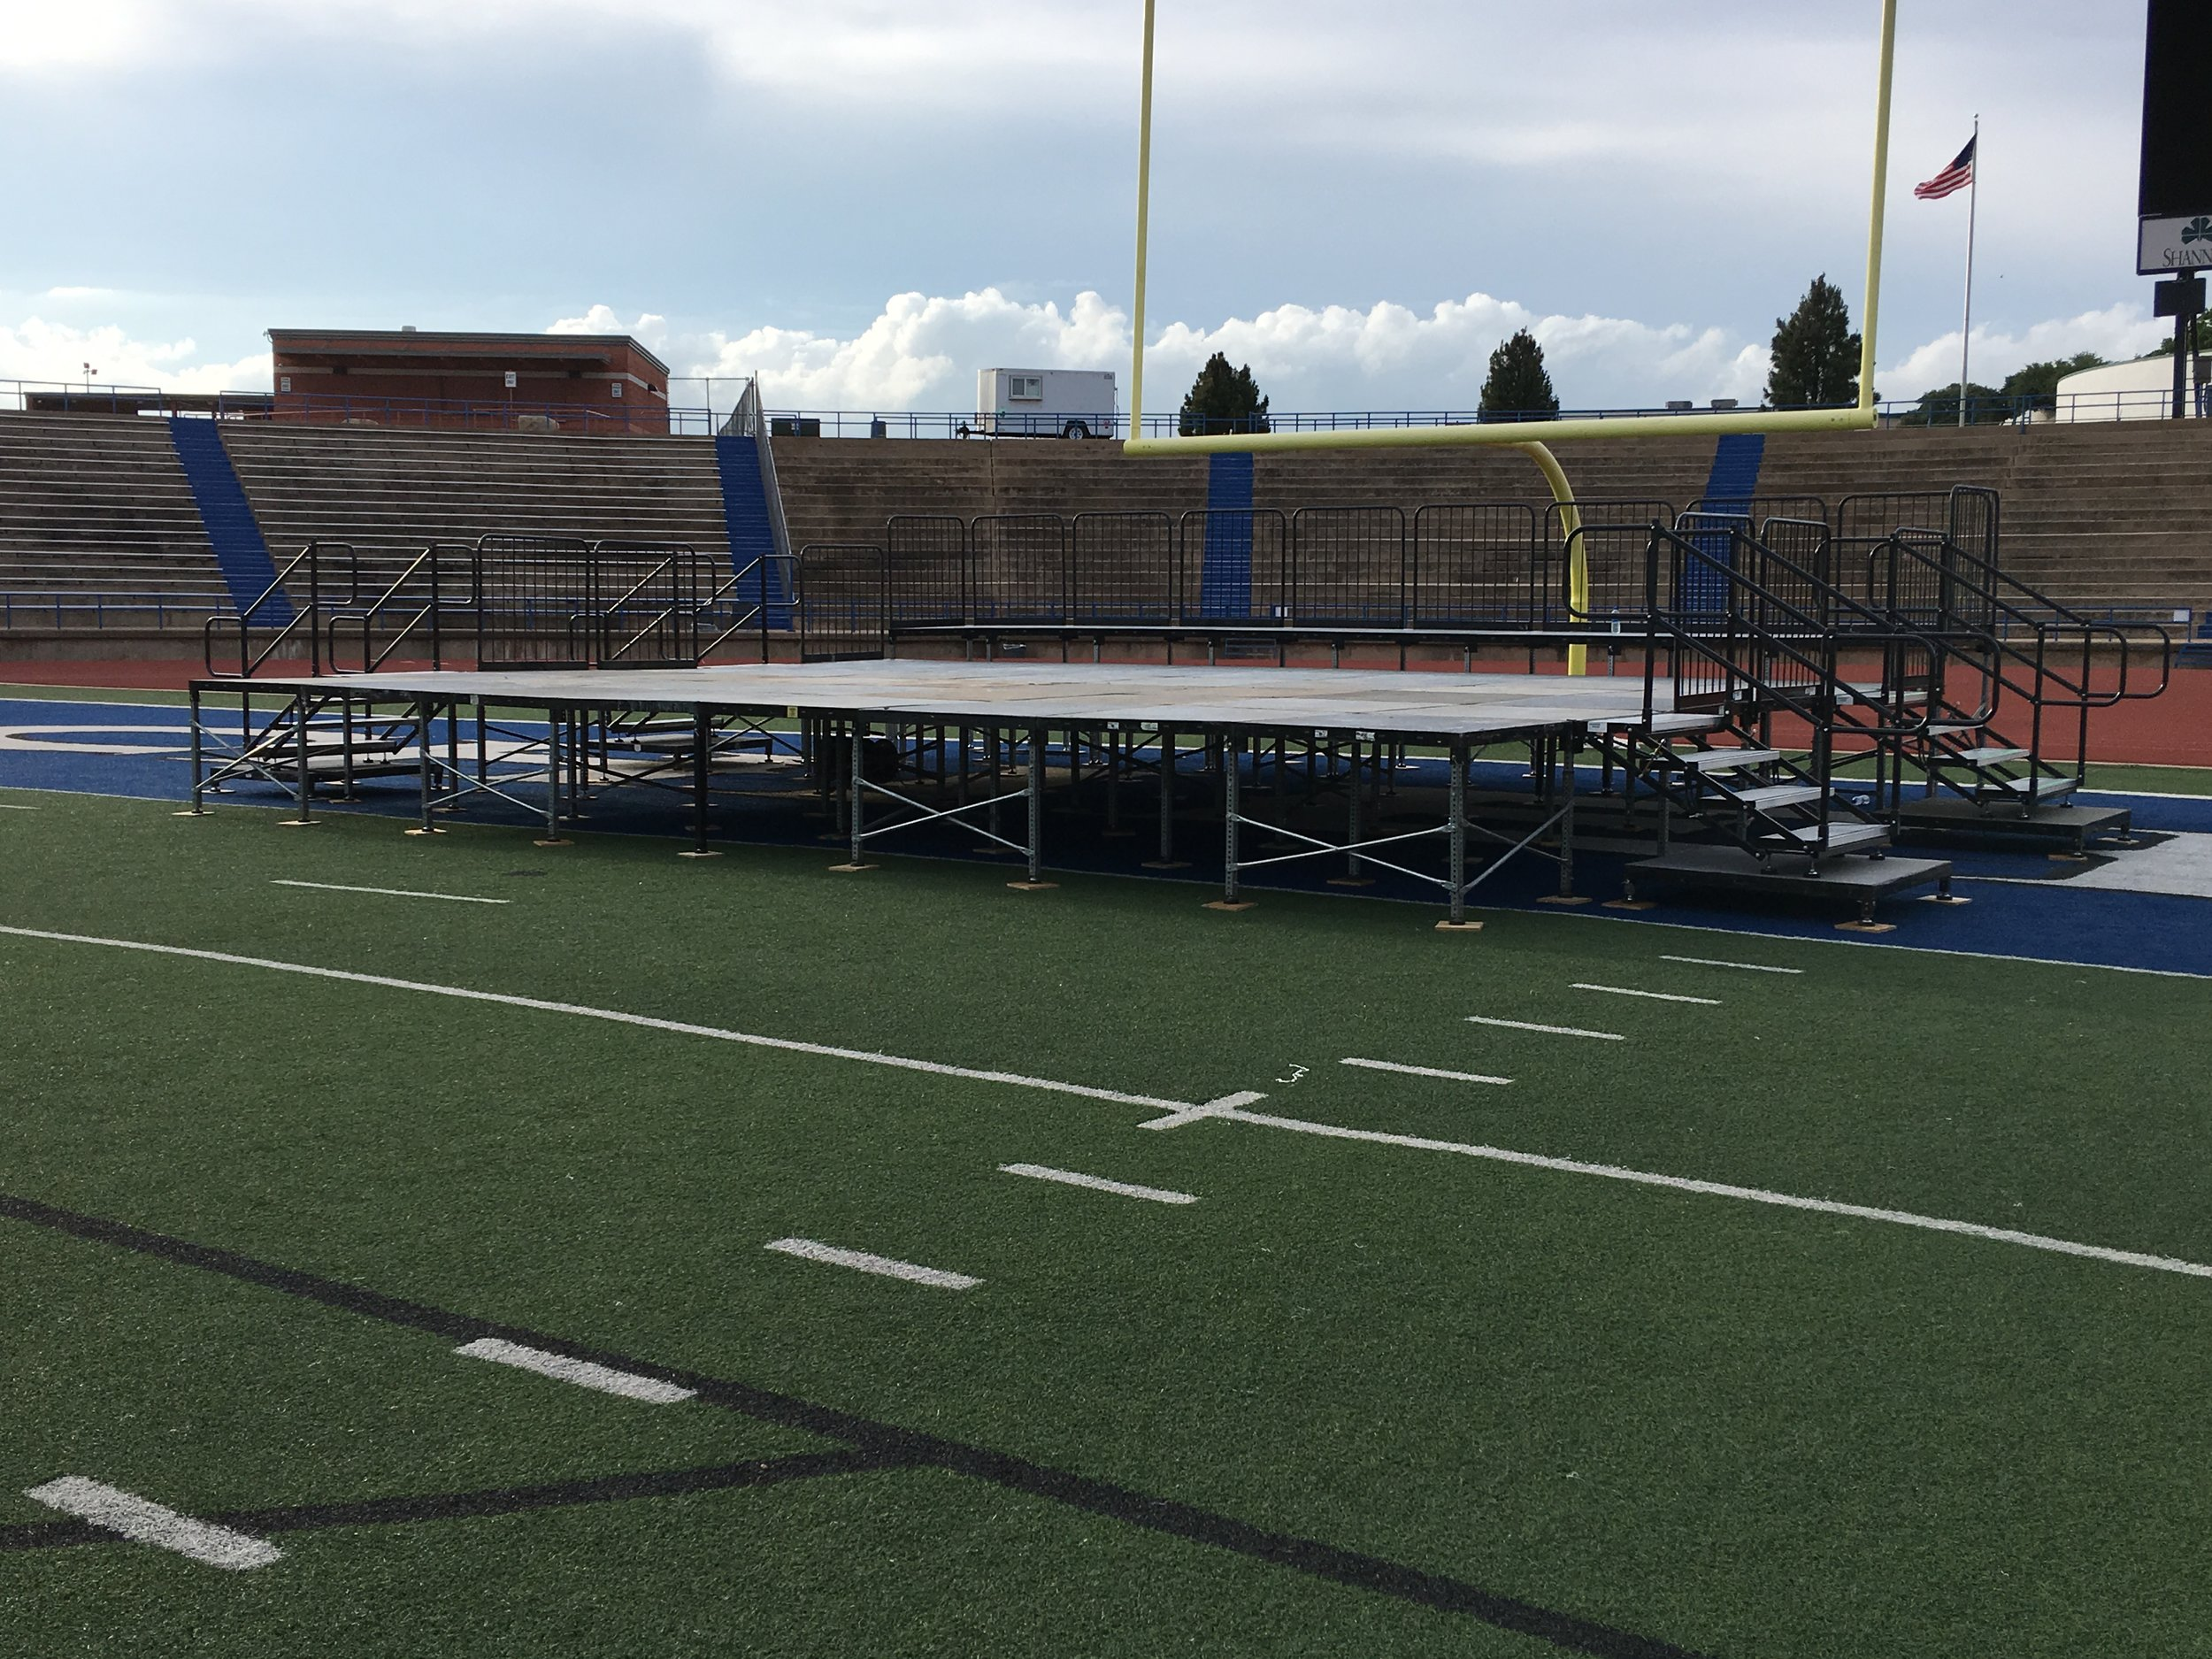 """Portable Staging - Does your event need a small stage, we have various solutions to meet your needs.We have in stock a Biljax ST8100 Steel modular stage. Stage is configurable to any shape or size in 4x4ft sections. This modular stage system can be customized to bridge uneven terrain, extend existing stages, build fashion runways or stage trusts, even deck over a pool!The Bijax stage system has a infinitely adjustable leg system. Deck heights can be built from 6"""" to as high as your application requires."""